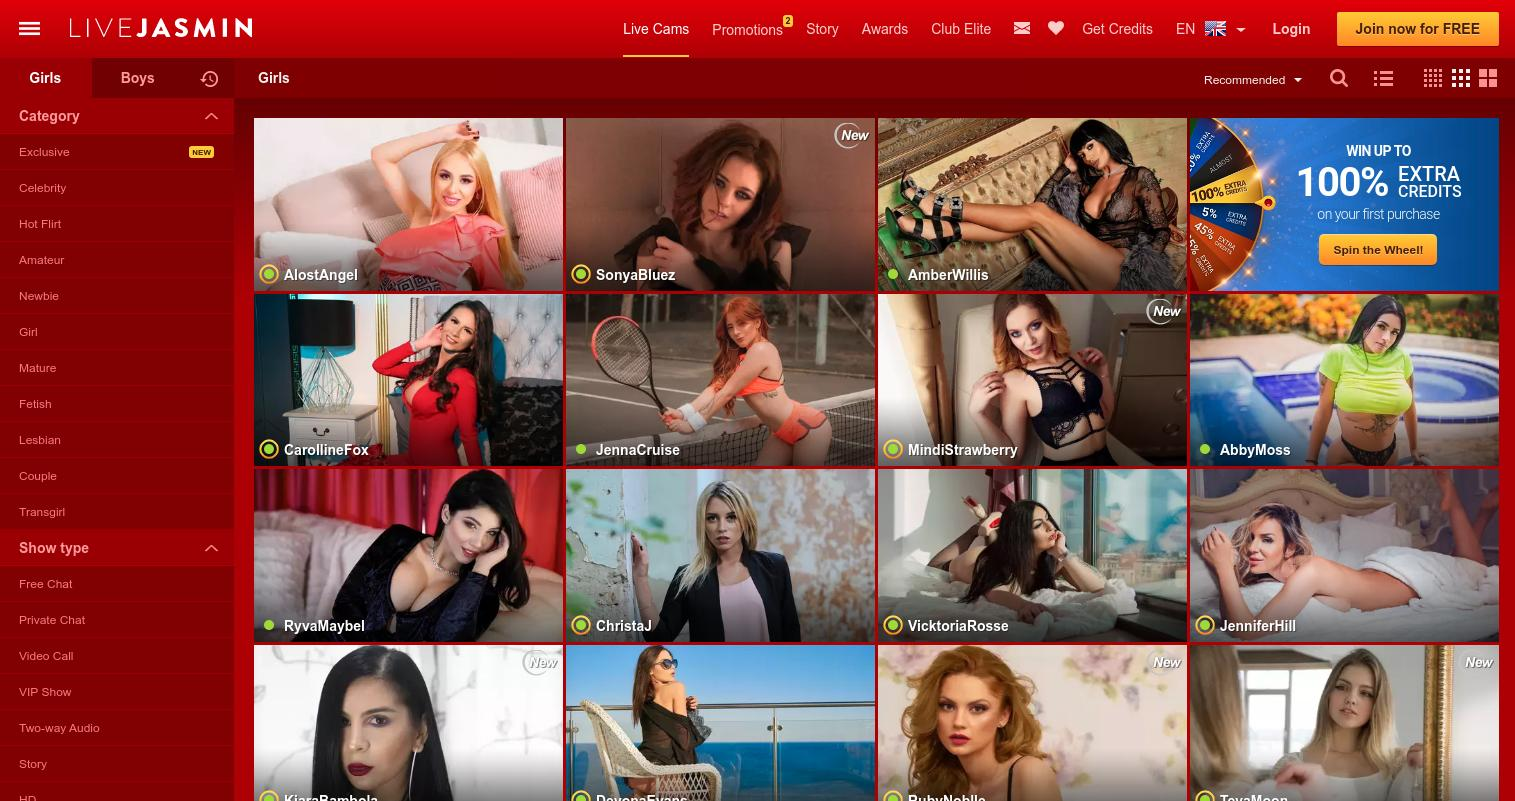 Livejasmin Home Page Screenshot